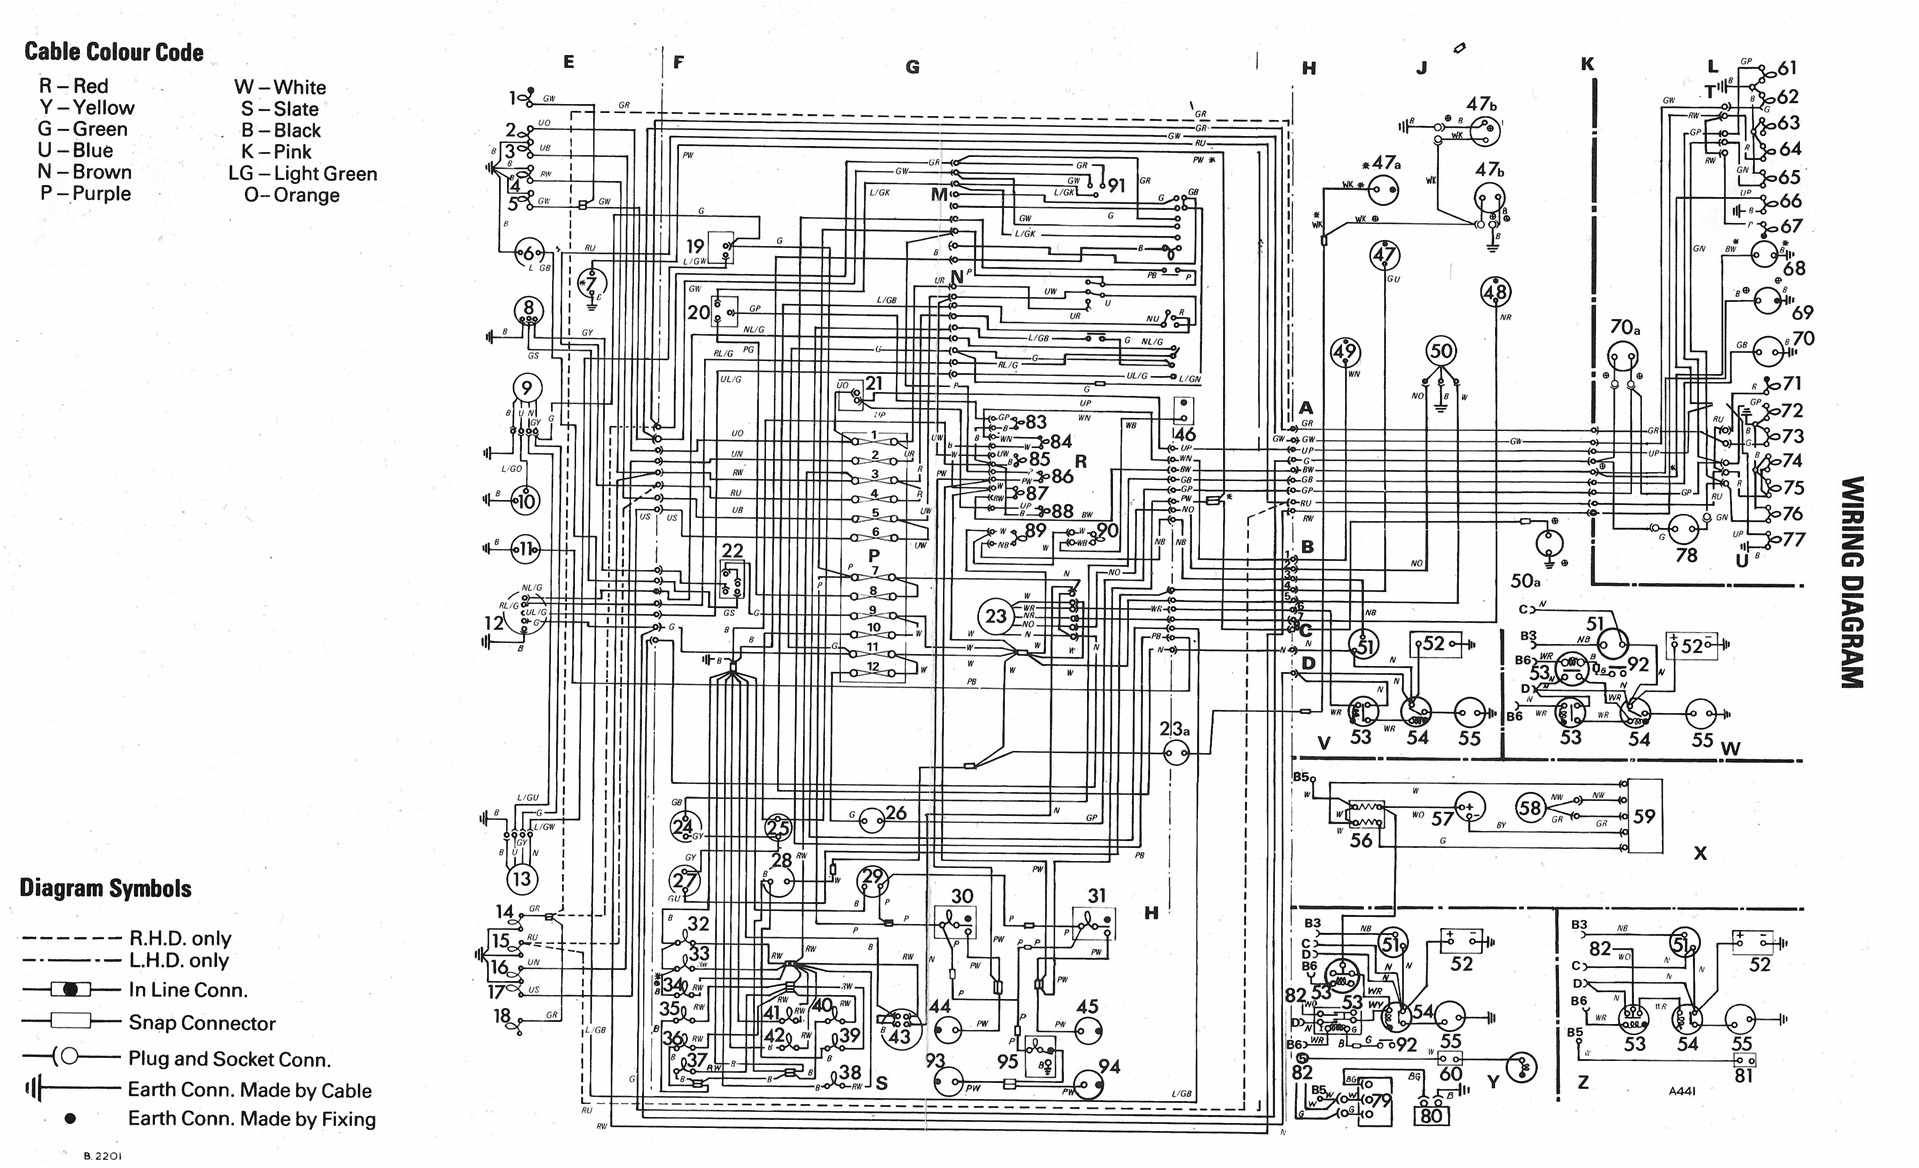 482800022528094020 on 2005 subaru impreza wiring diagrams